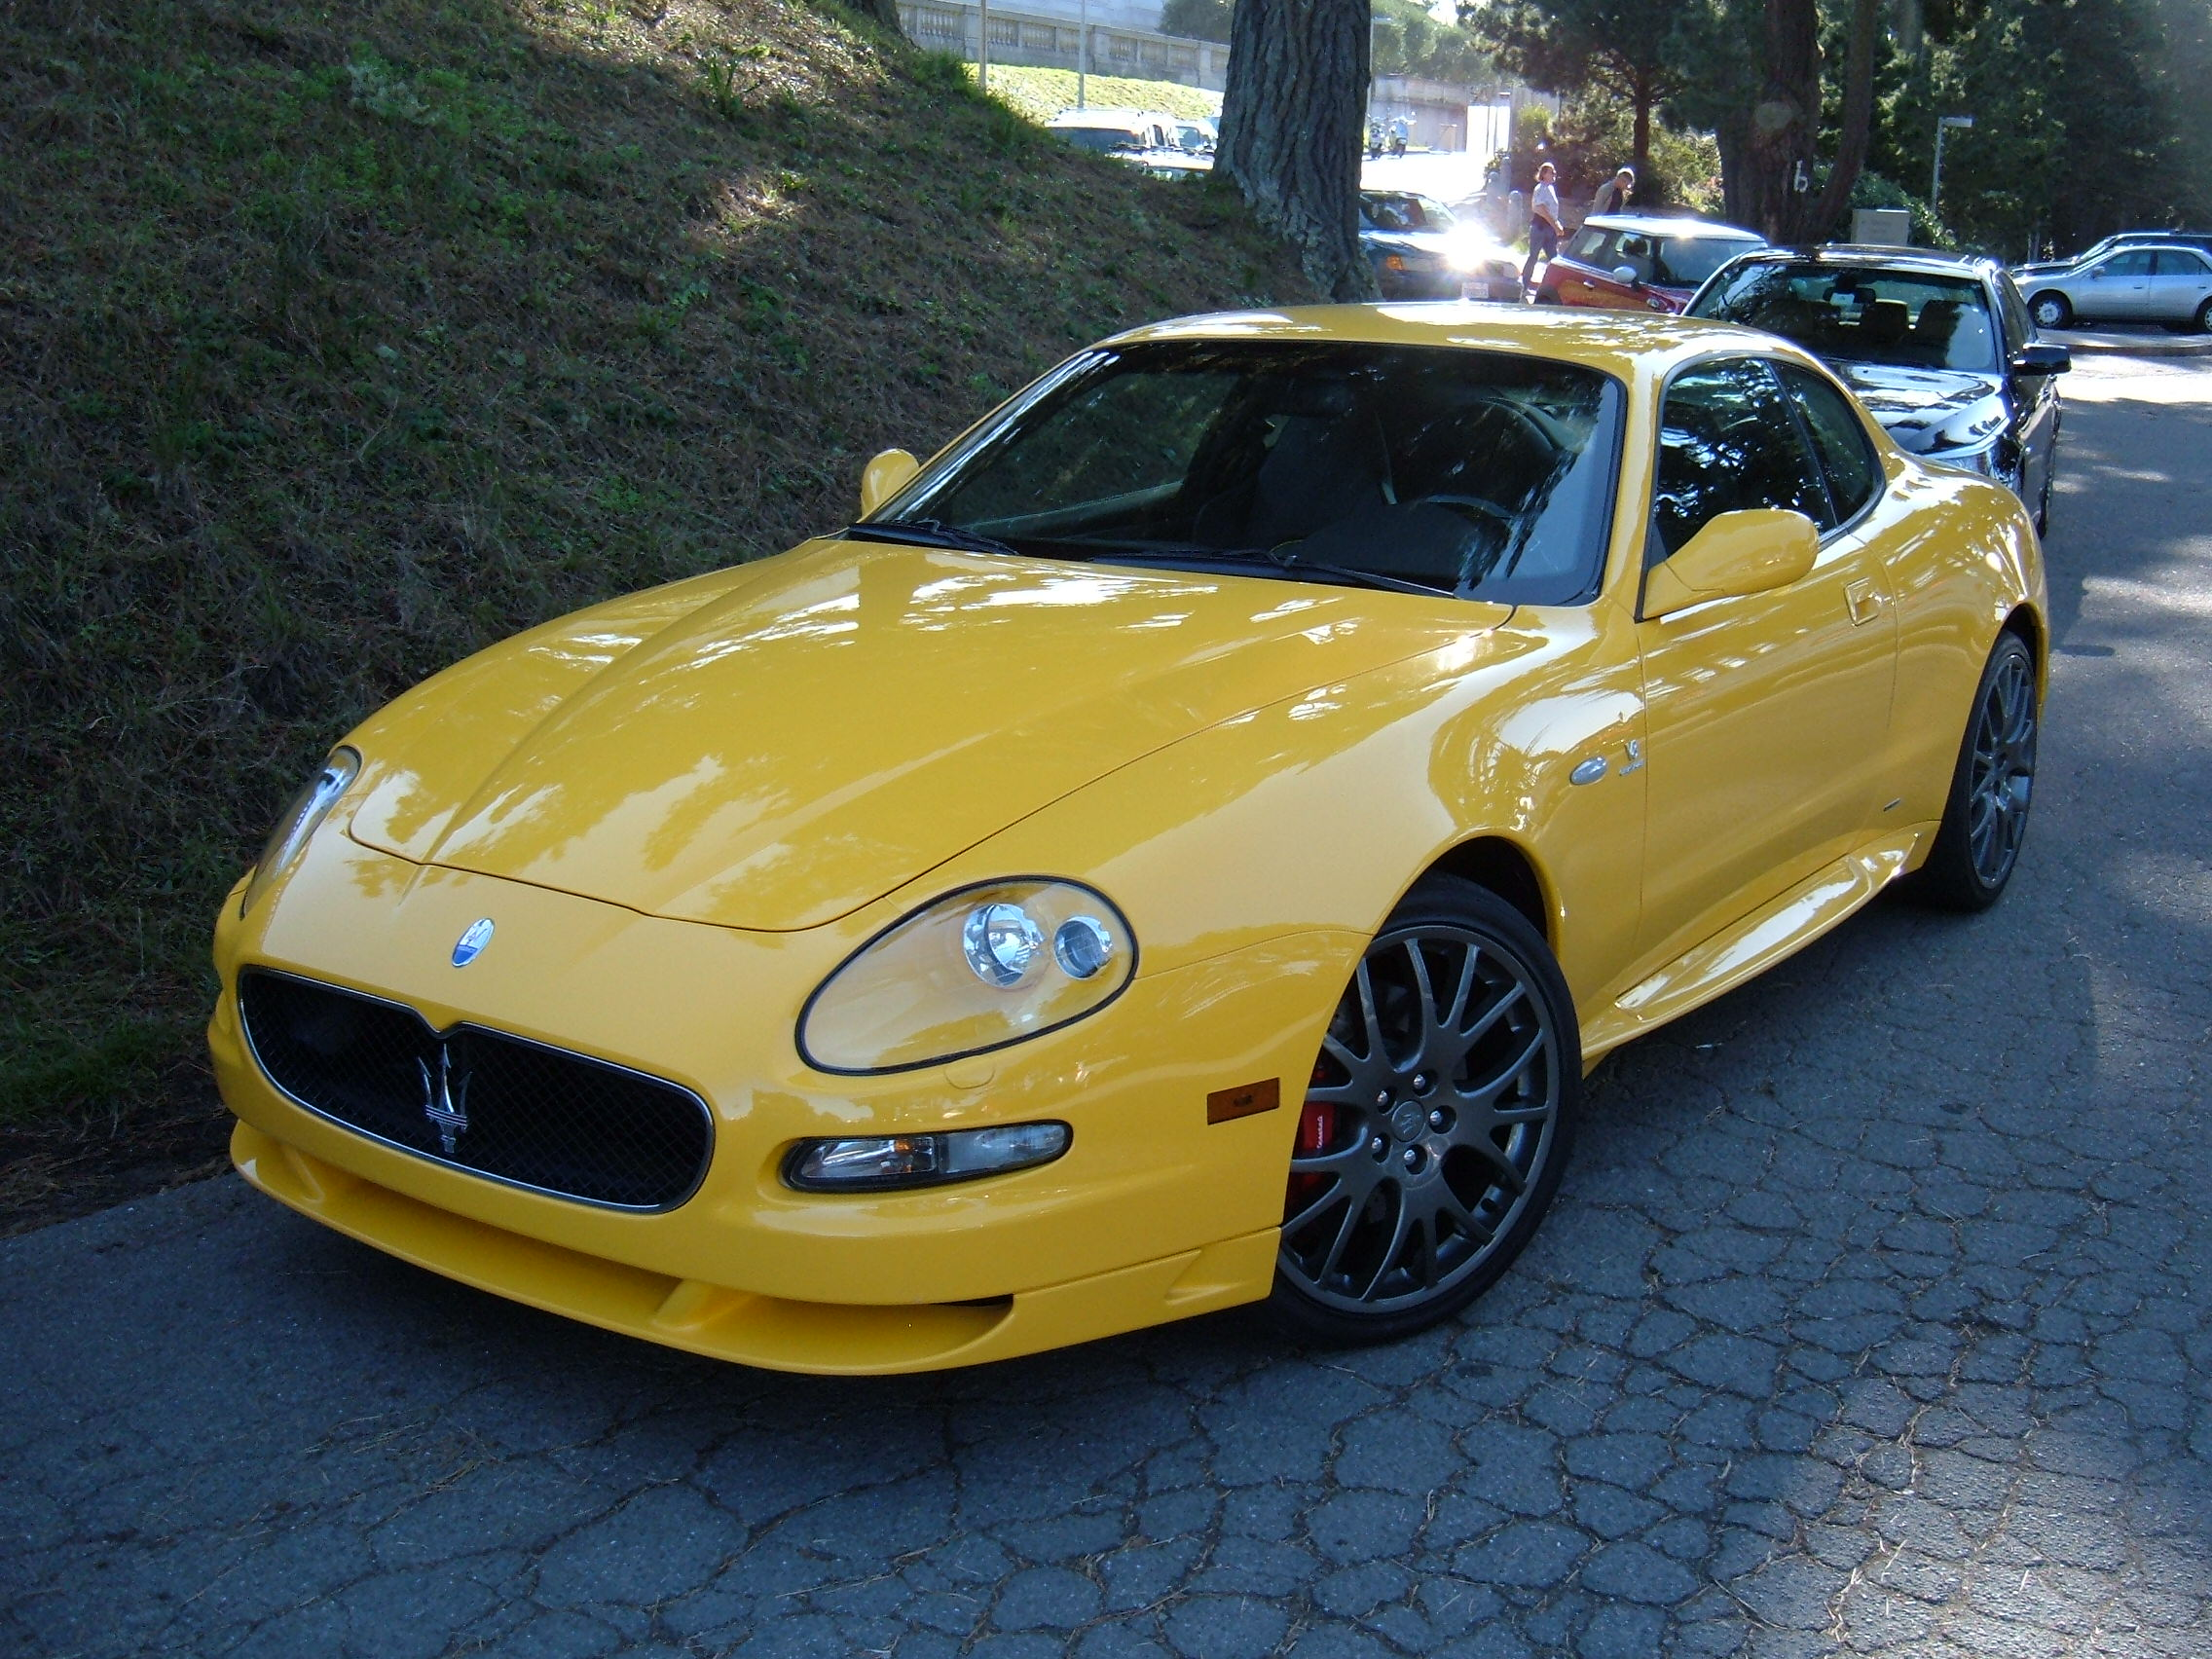 File:Yellow Maserati GranSport side.JPG - Wikimedia Commons